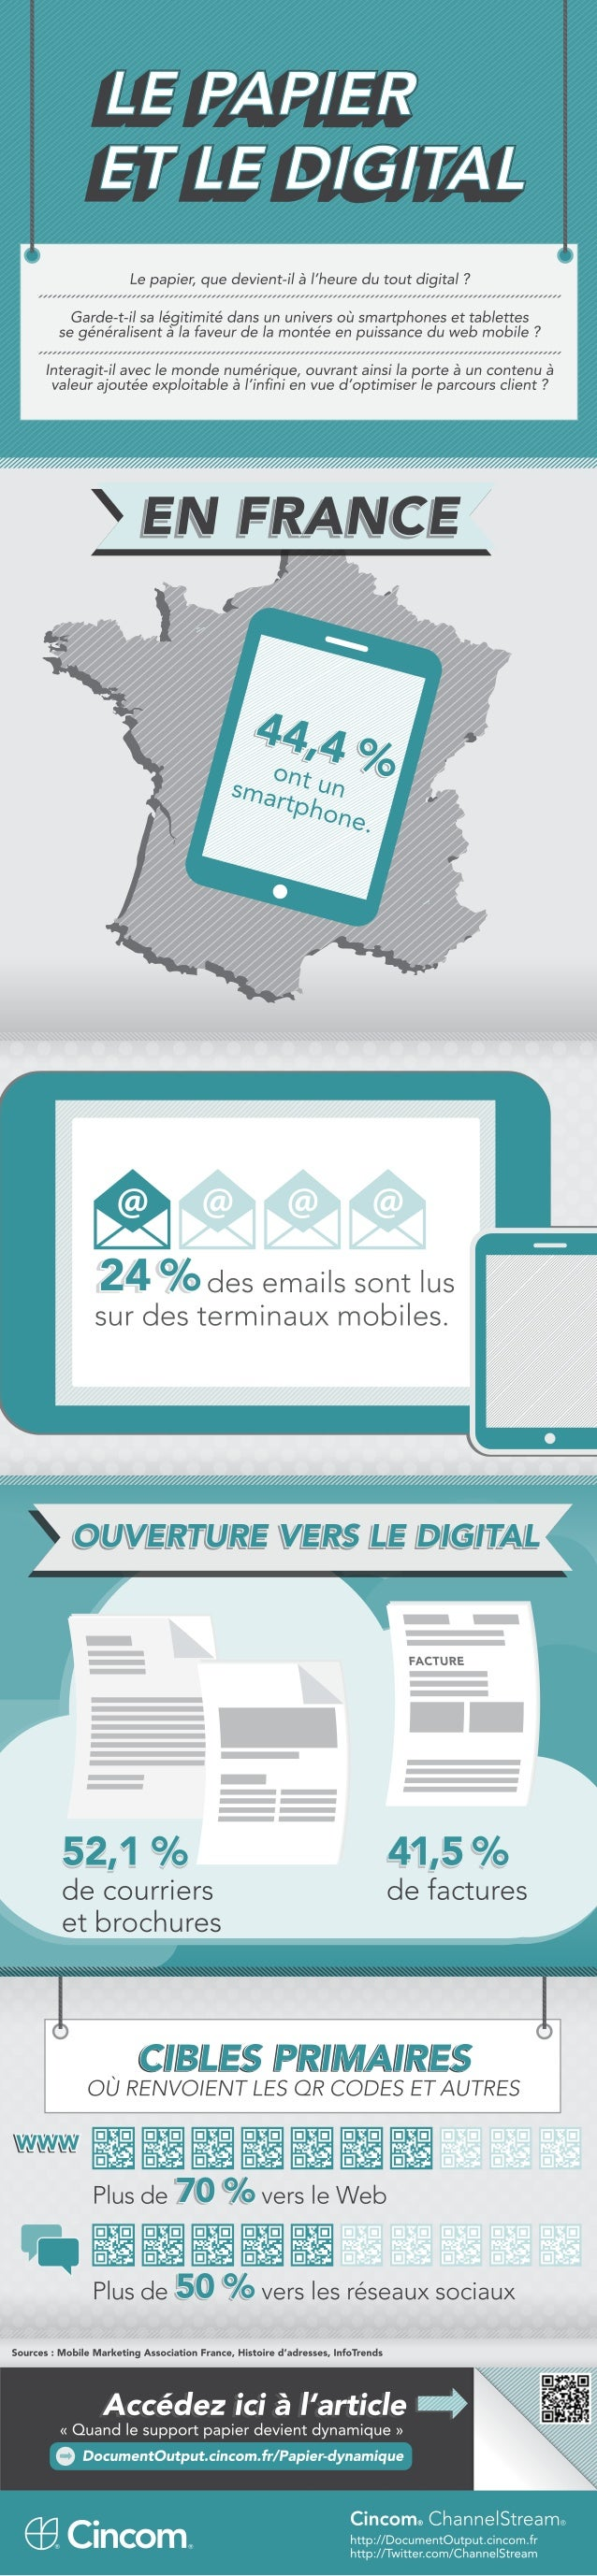 "Infographie ""Le papier et le digital 